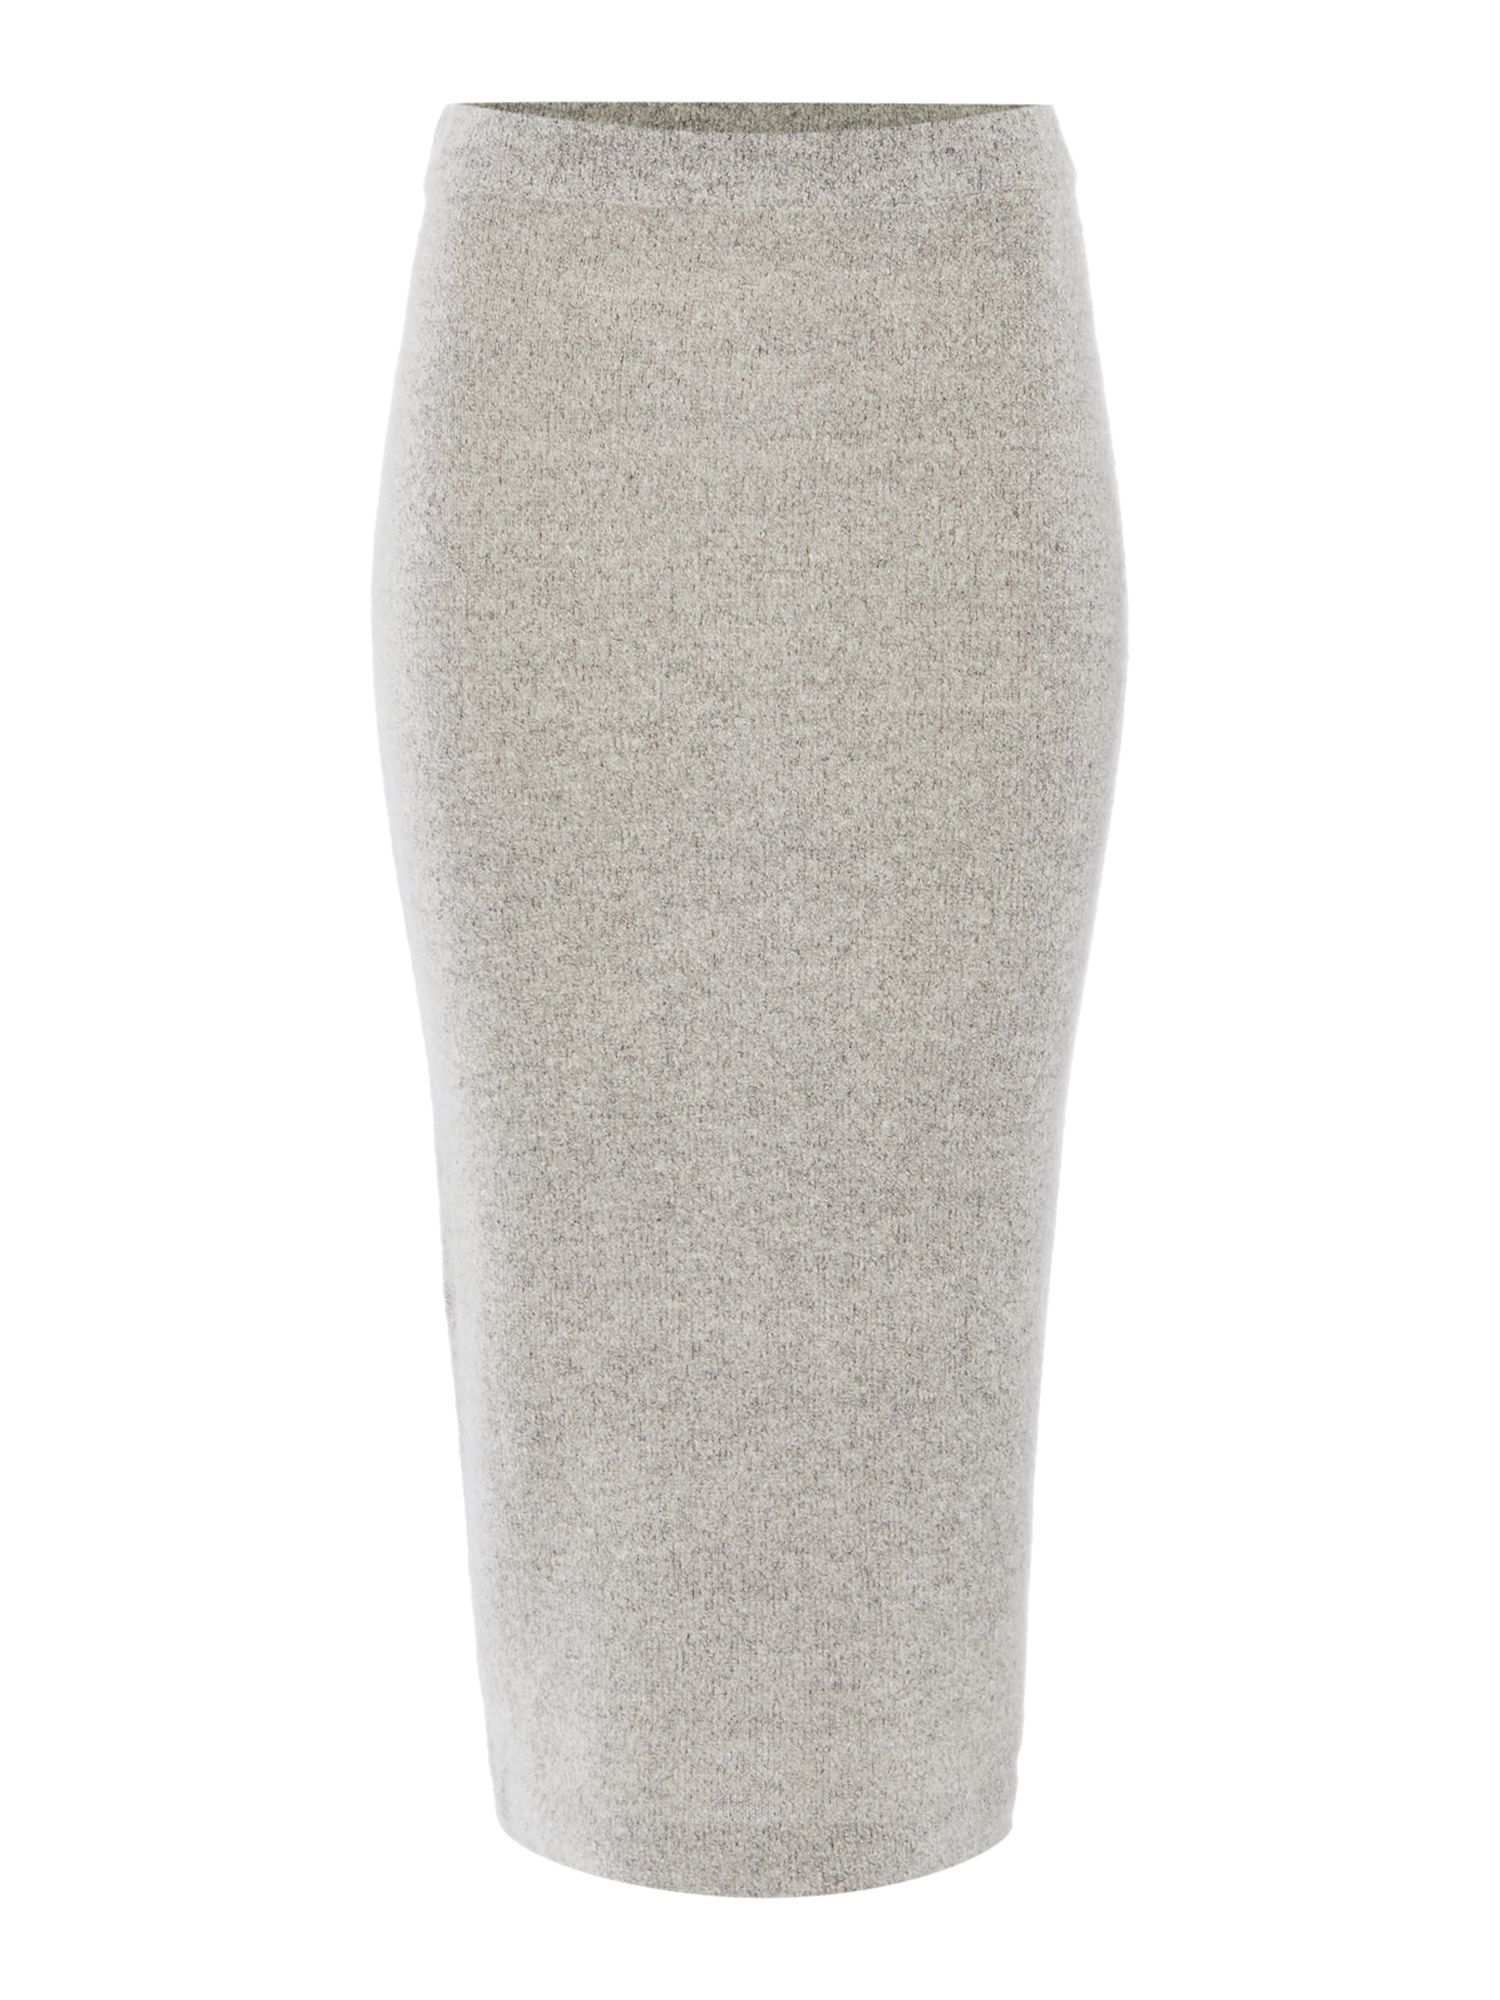 Gray & Willow Bodil Boucle Knit Skirt Cloud